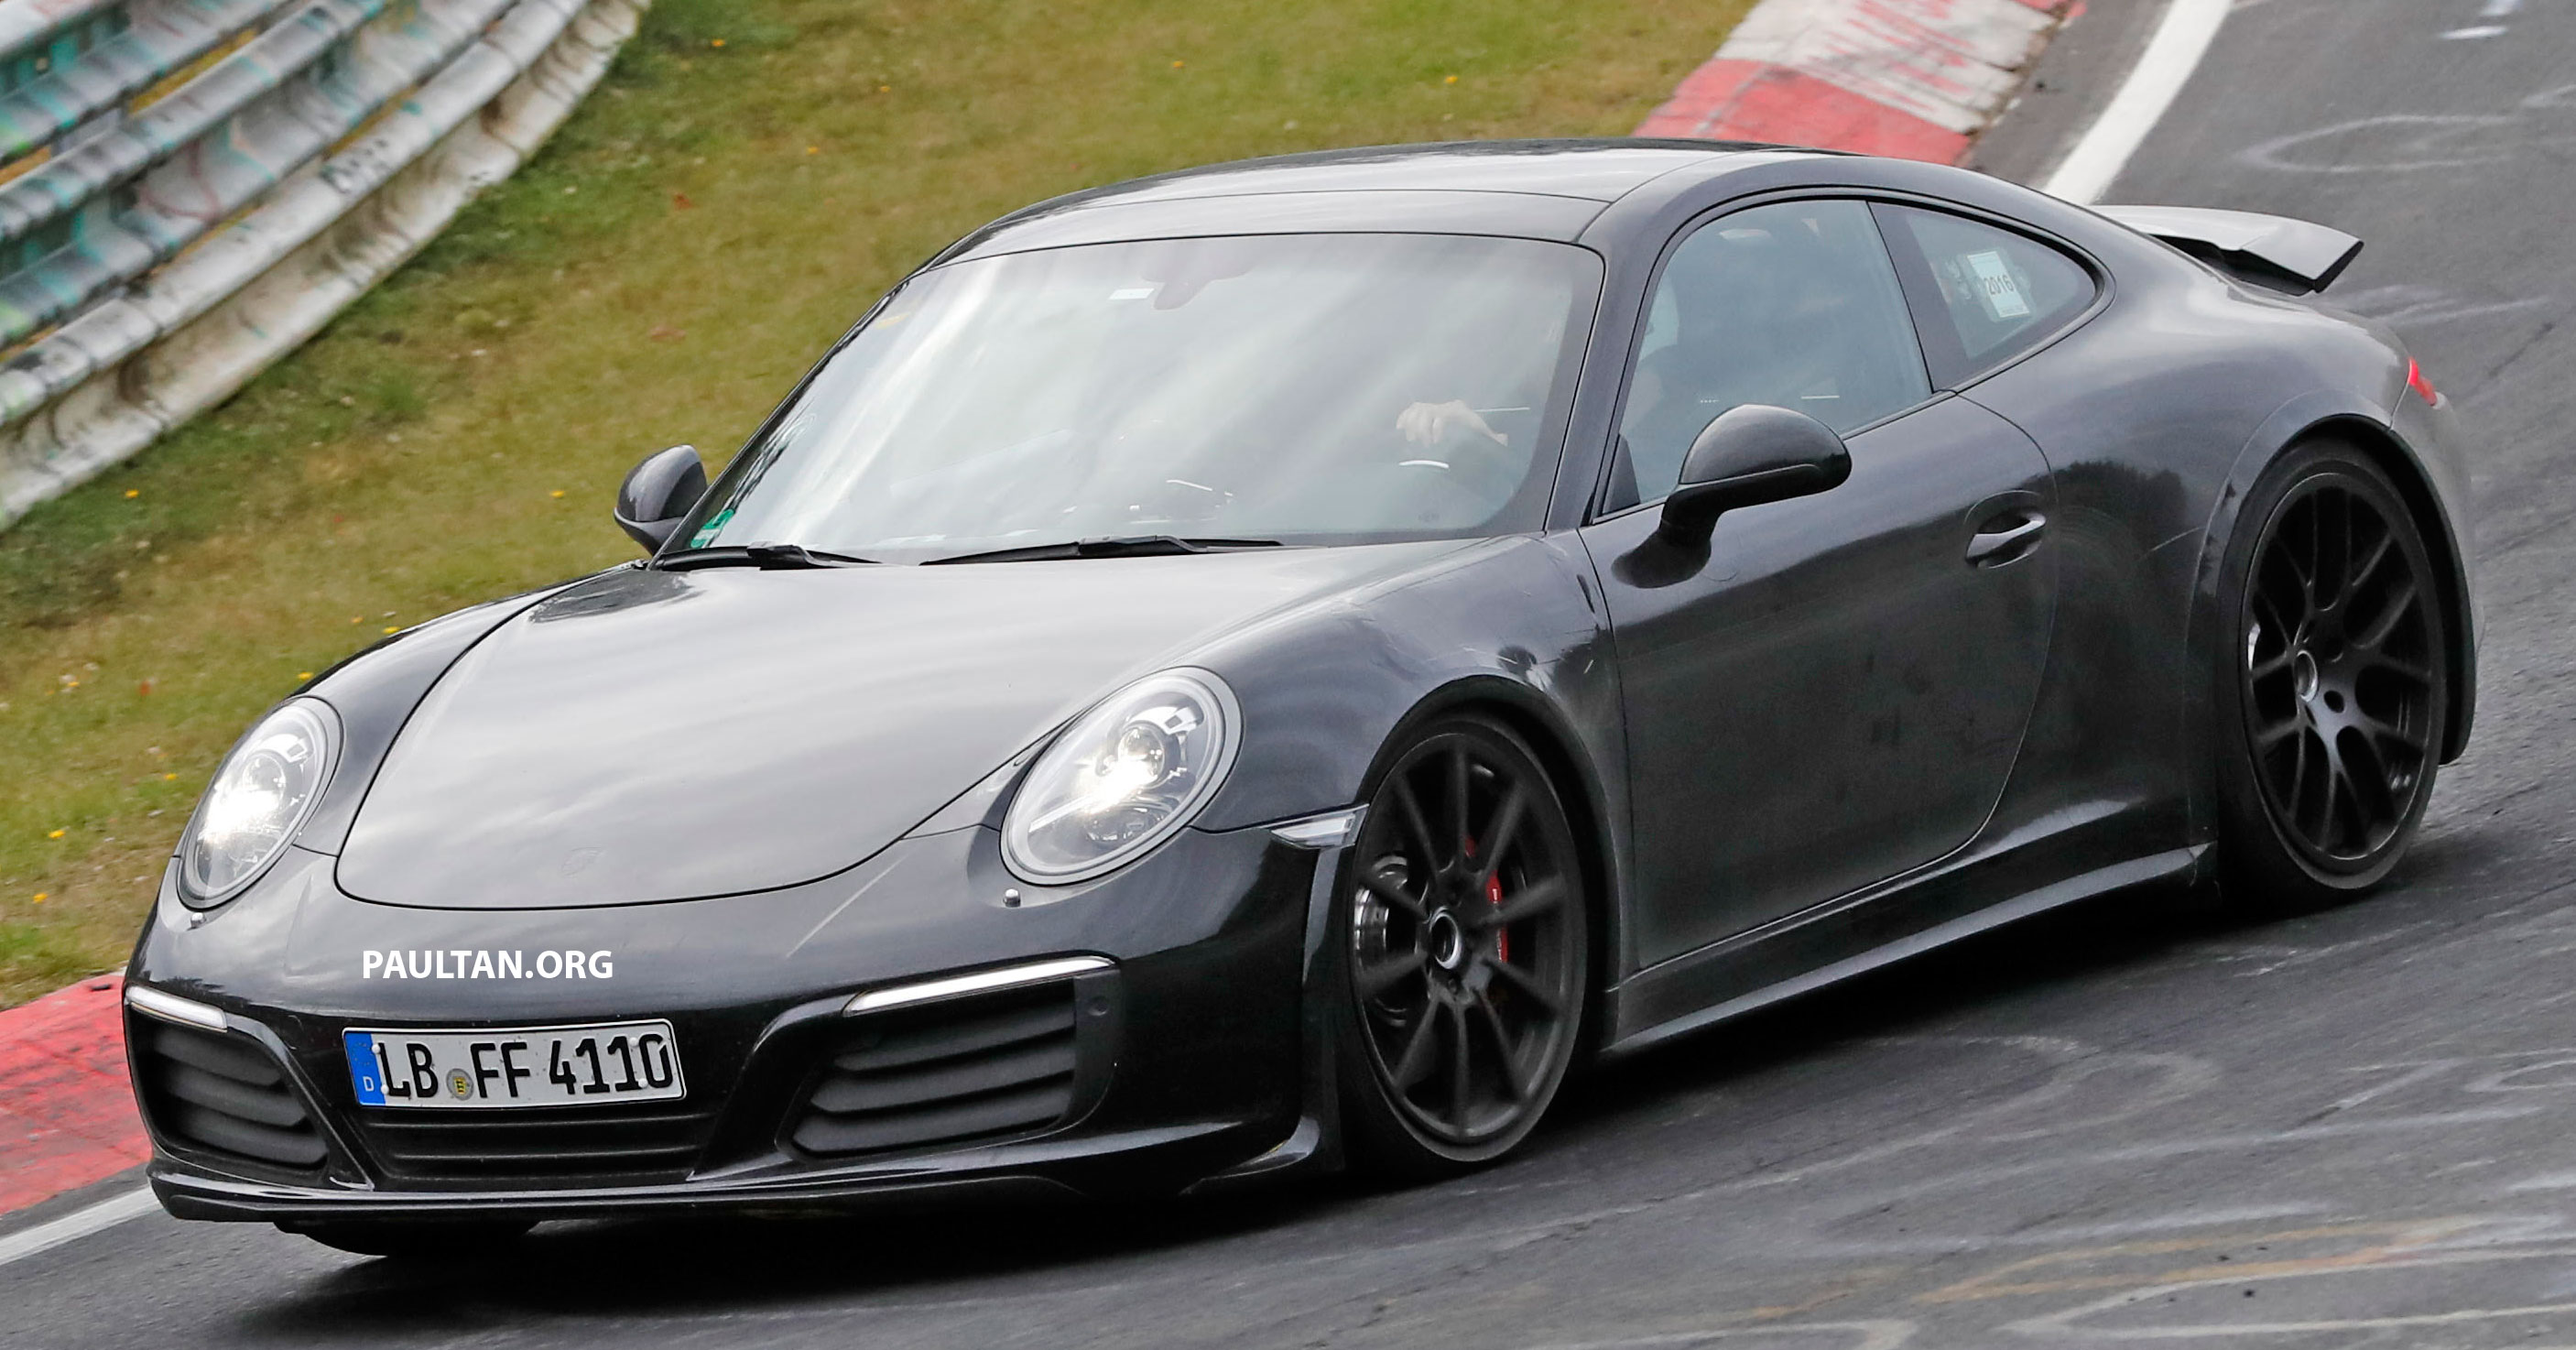 Spied Next Gen Porsche 911 Seen In 991 Clothes Paul Tan